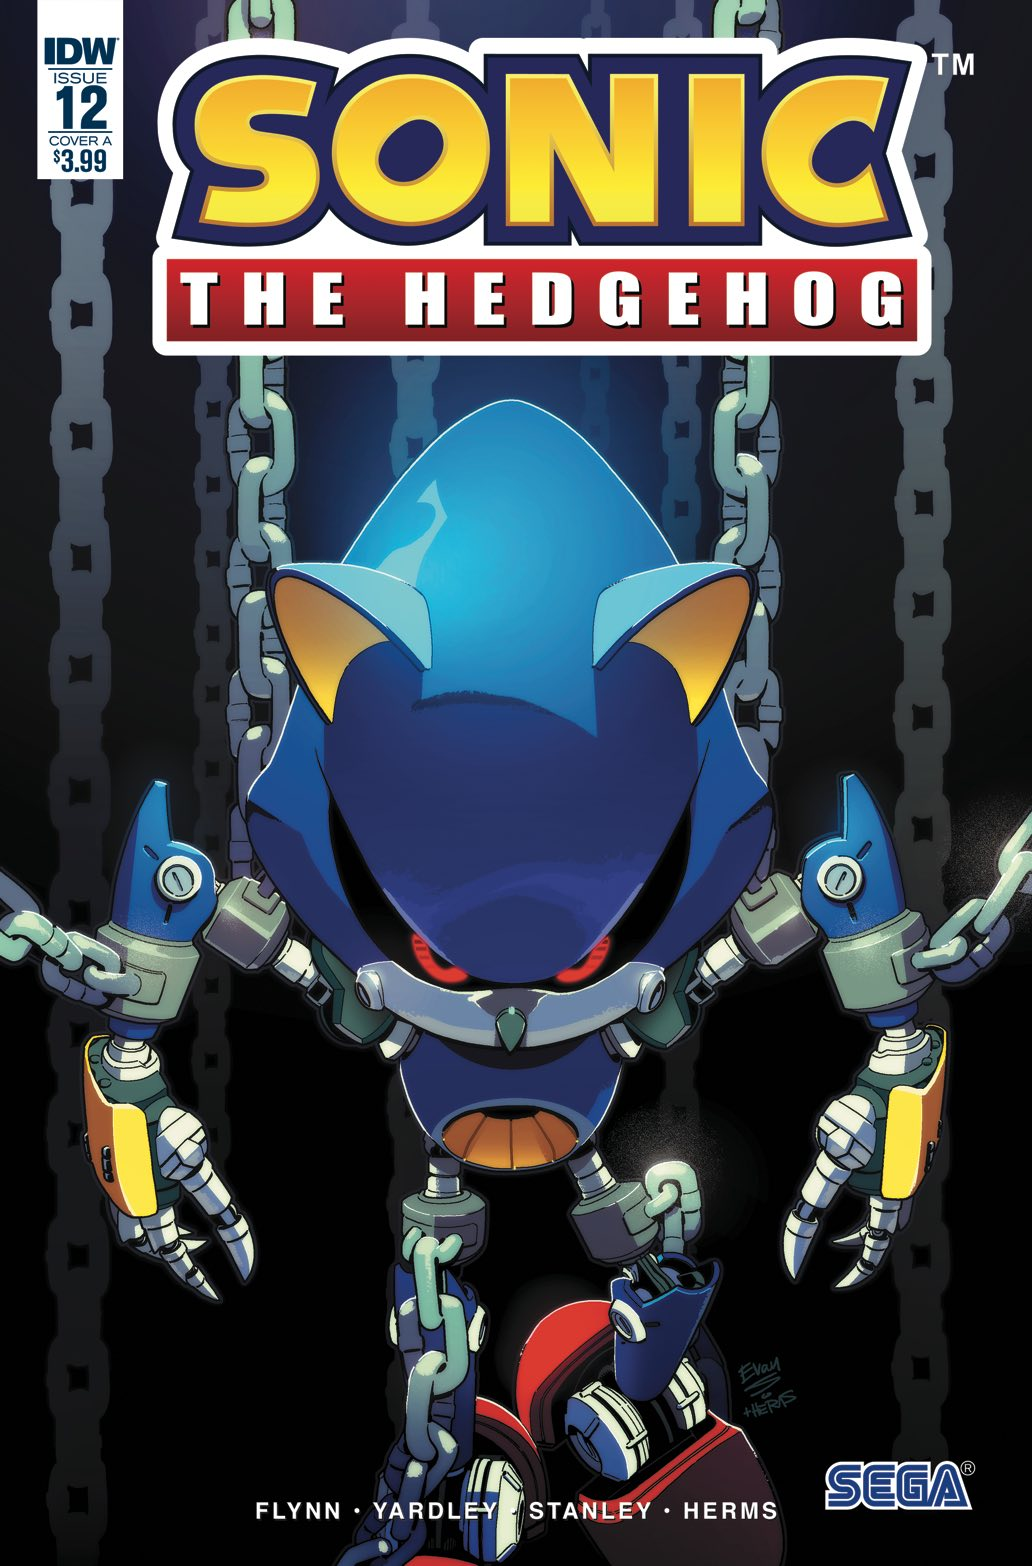 IDW Sonic the Hedgehog Issue 12